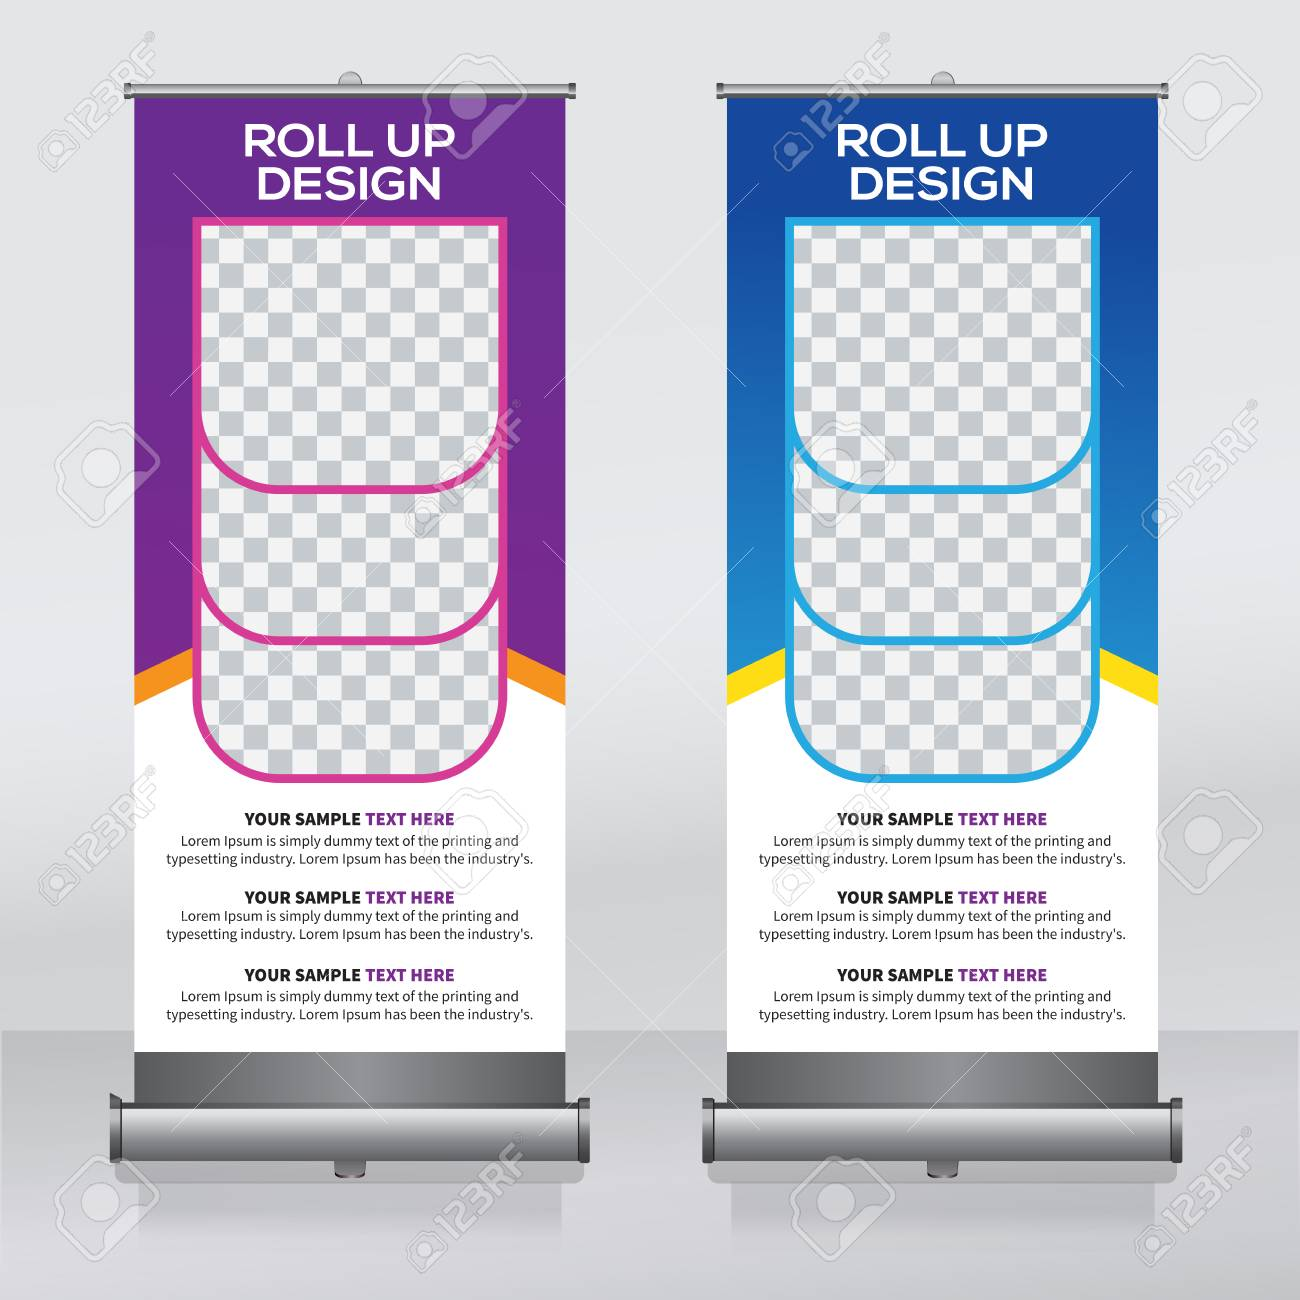 roll up banner design template vertical abstract background pull up design modern